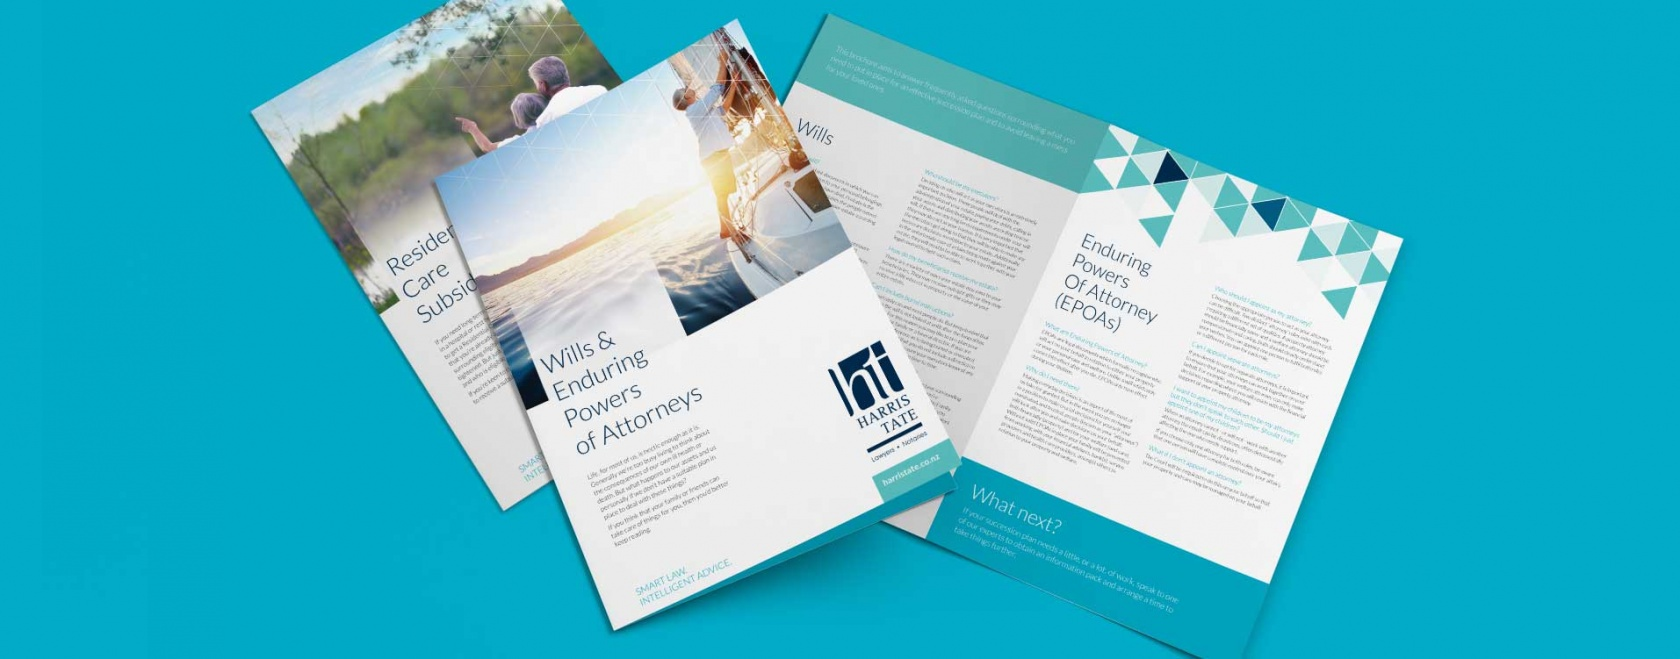 project-HarrisTate-brochures